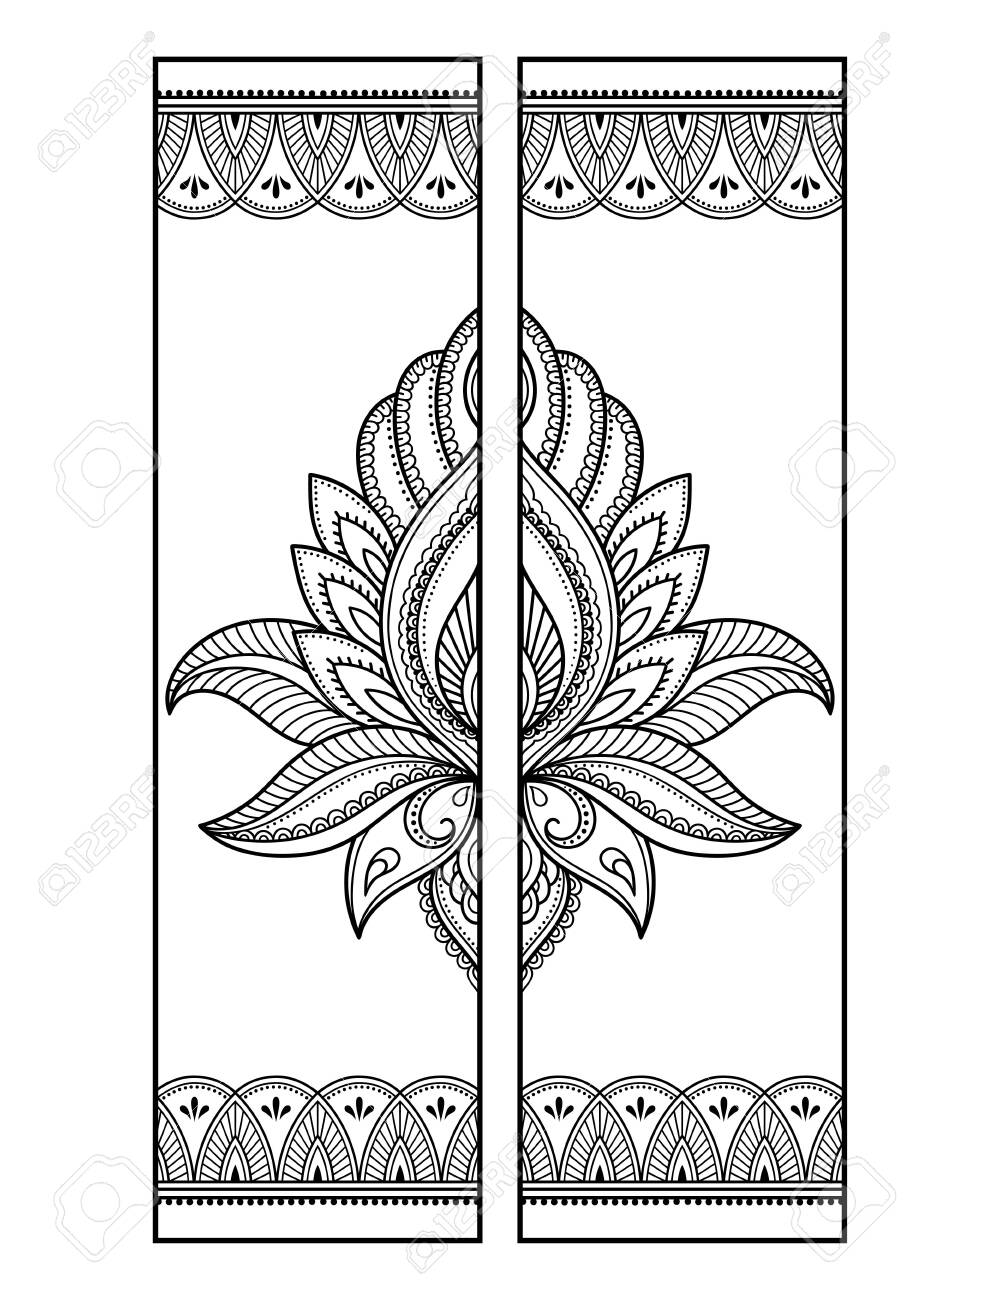 Printable bookmark - coloring. Set of black and white labels..